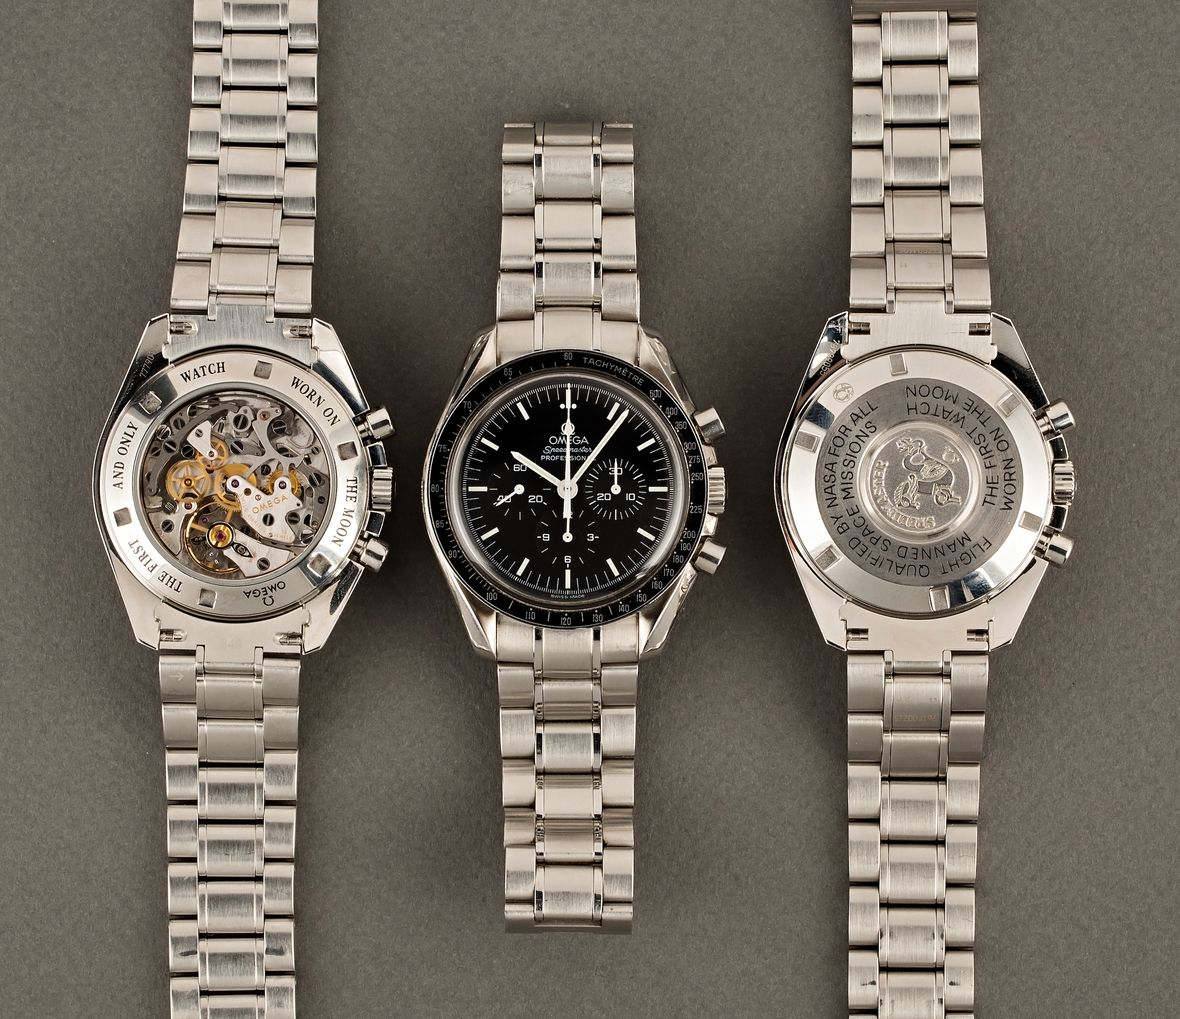 Omega Speedmaster Professional Moonwatch Caliber 1861 and 1863 Movements